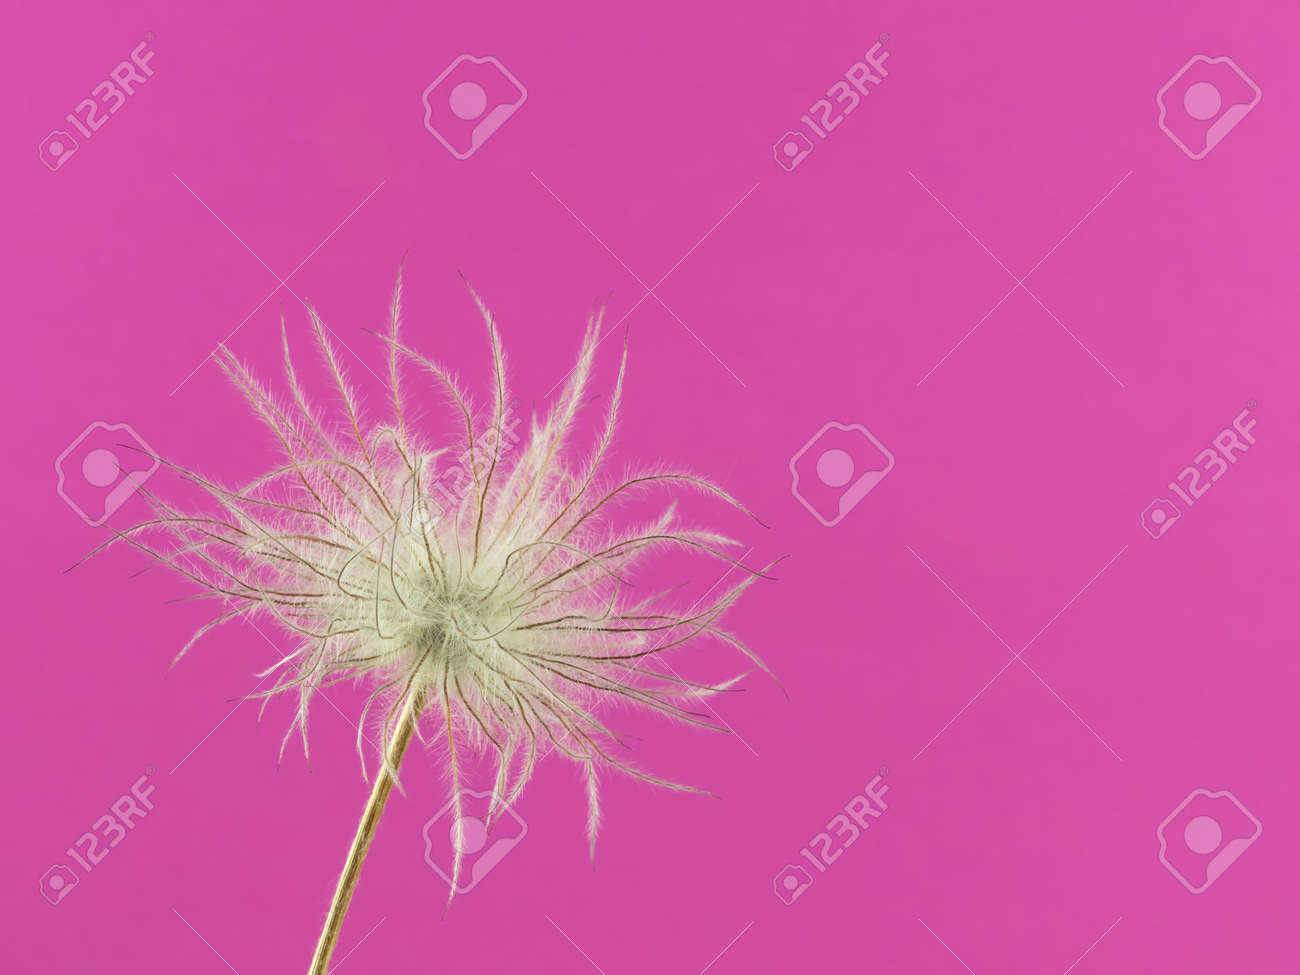 Close-up of the faded flower head of one pasqueflower isolated on pink - 167409925